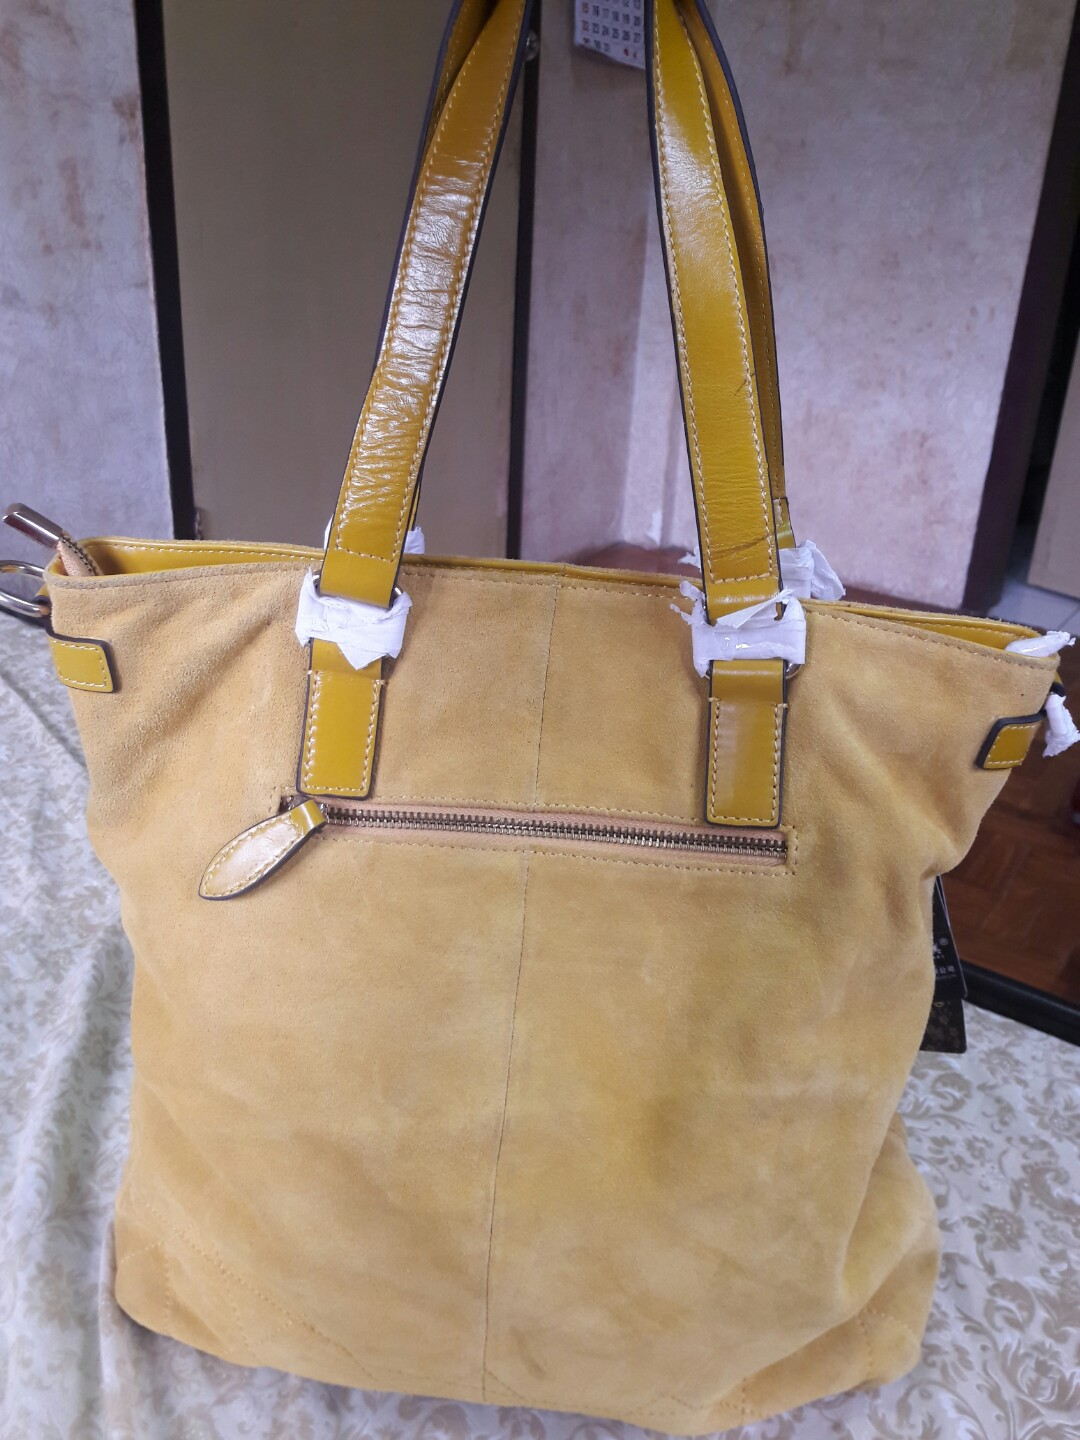 YING WEI MEI Genuine Leather 7, Women's Fashion, Bags & Wallets on Carousell